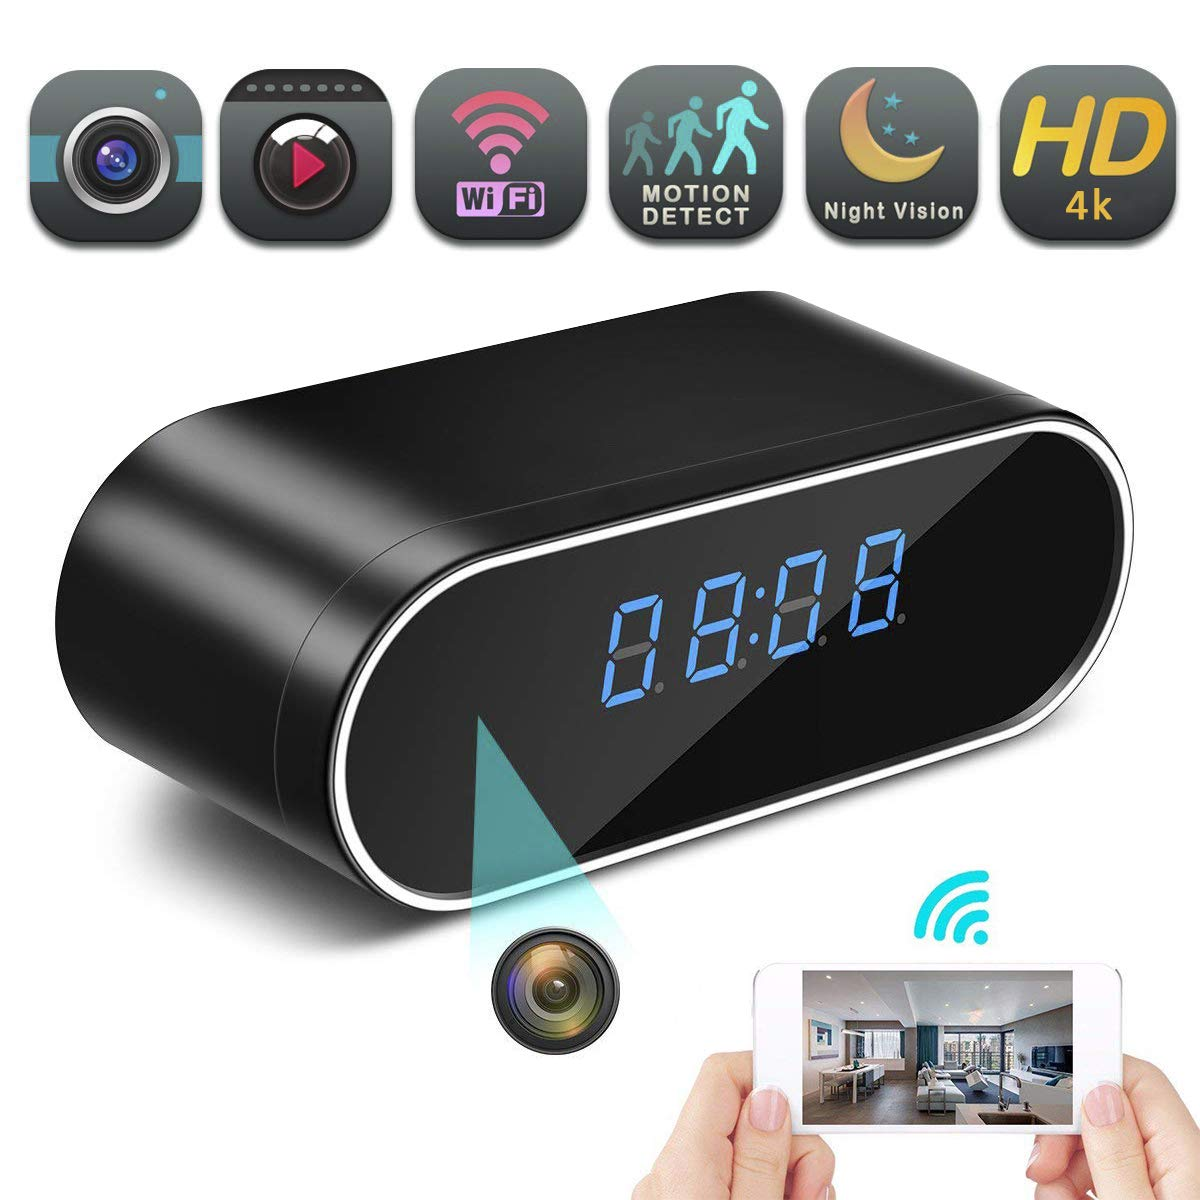 Hidden Spy Camera Wireless Hidden,4K Clock Hidden Cameras Wireless IP Surveillance Anti Mosquito Camera for Home Security Monitor Video Recorder Cam 150 Angle Night Vision Motion Detection(Black) by Feeke